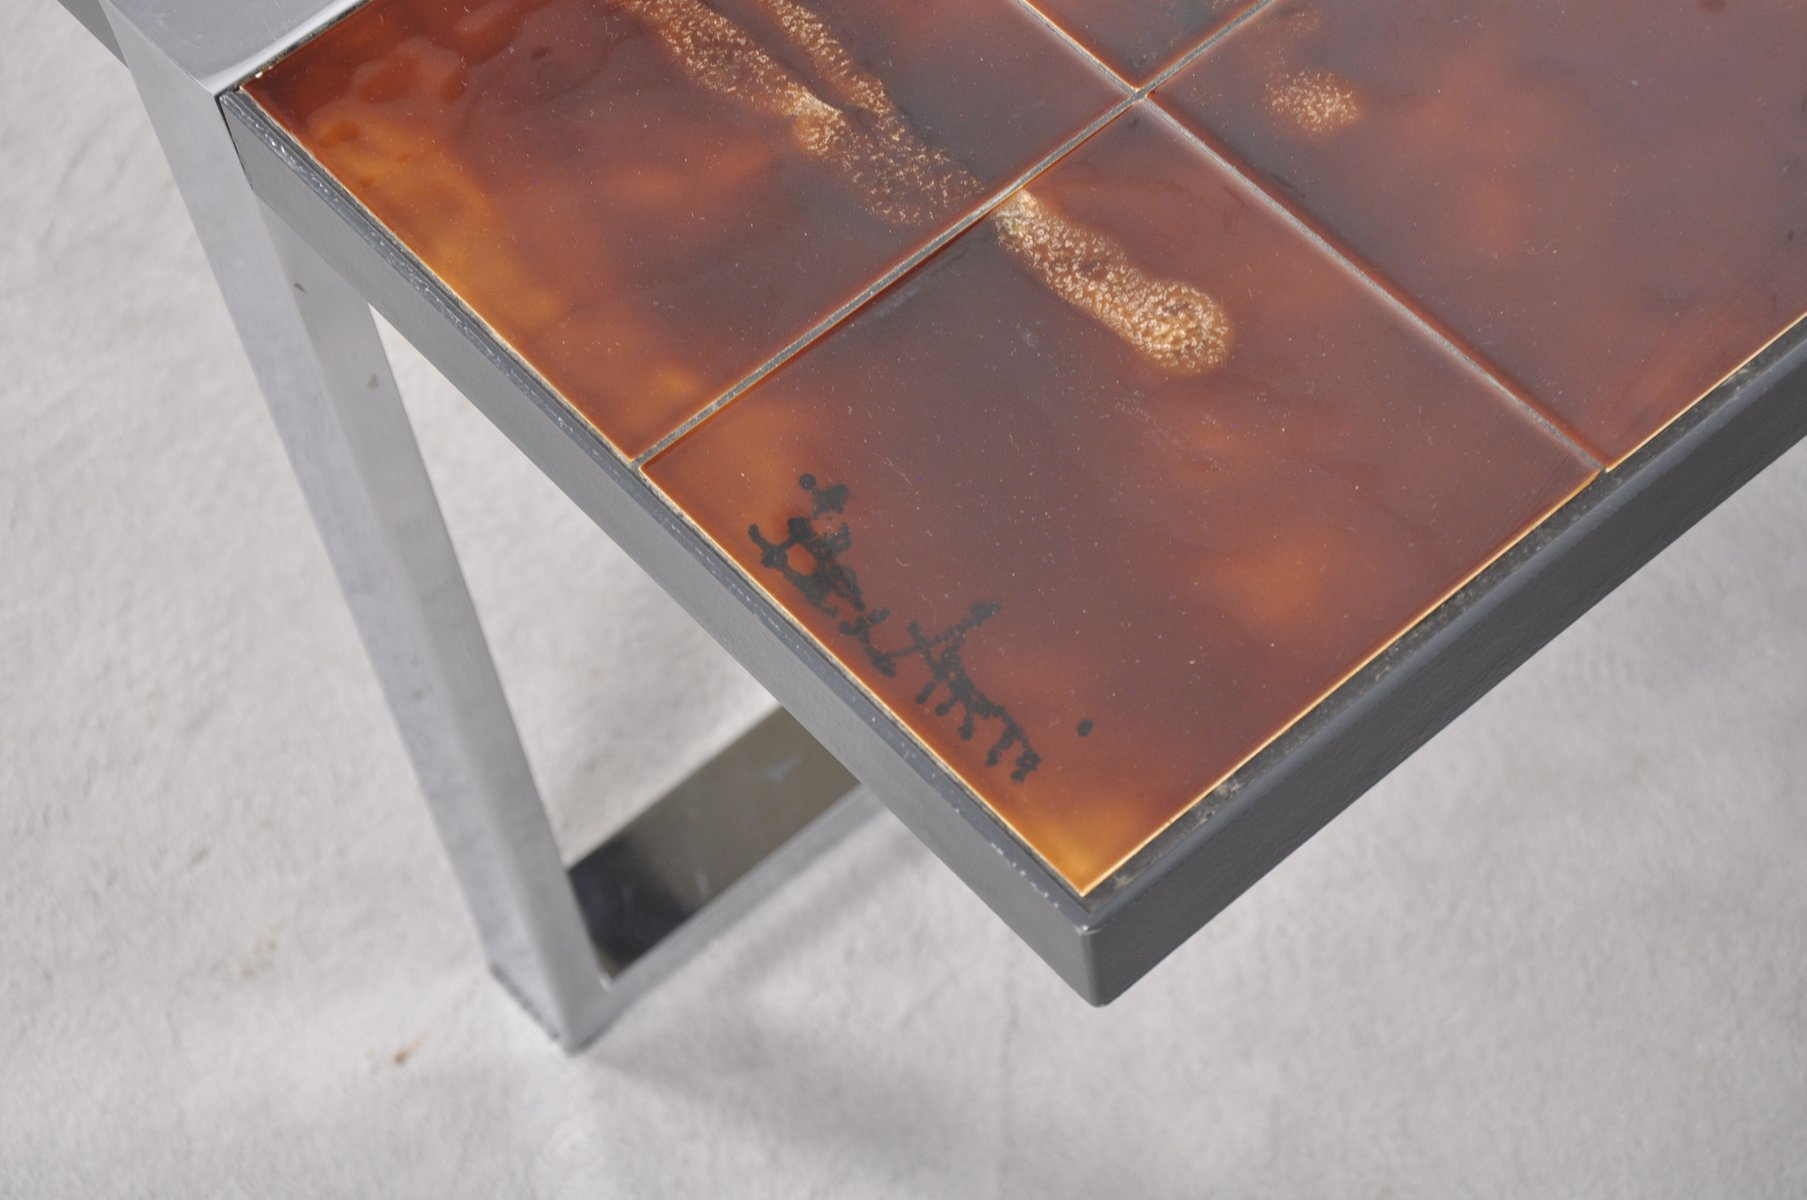 Coffee Table with Ceramic Tile Top by Juliette Belarti 1960s for